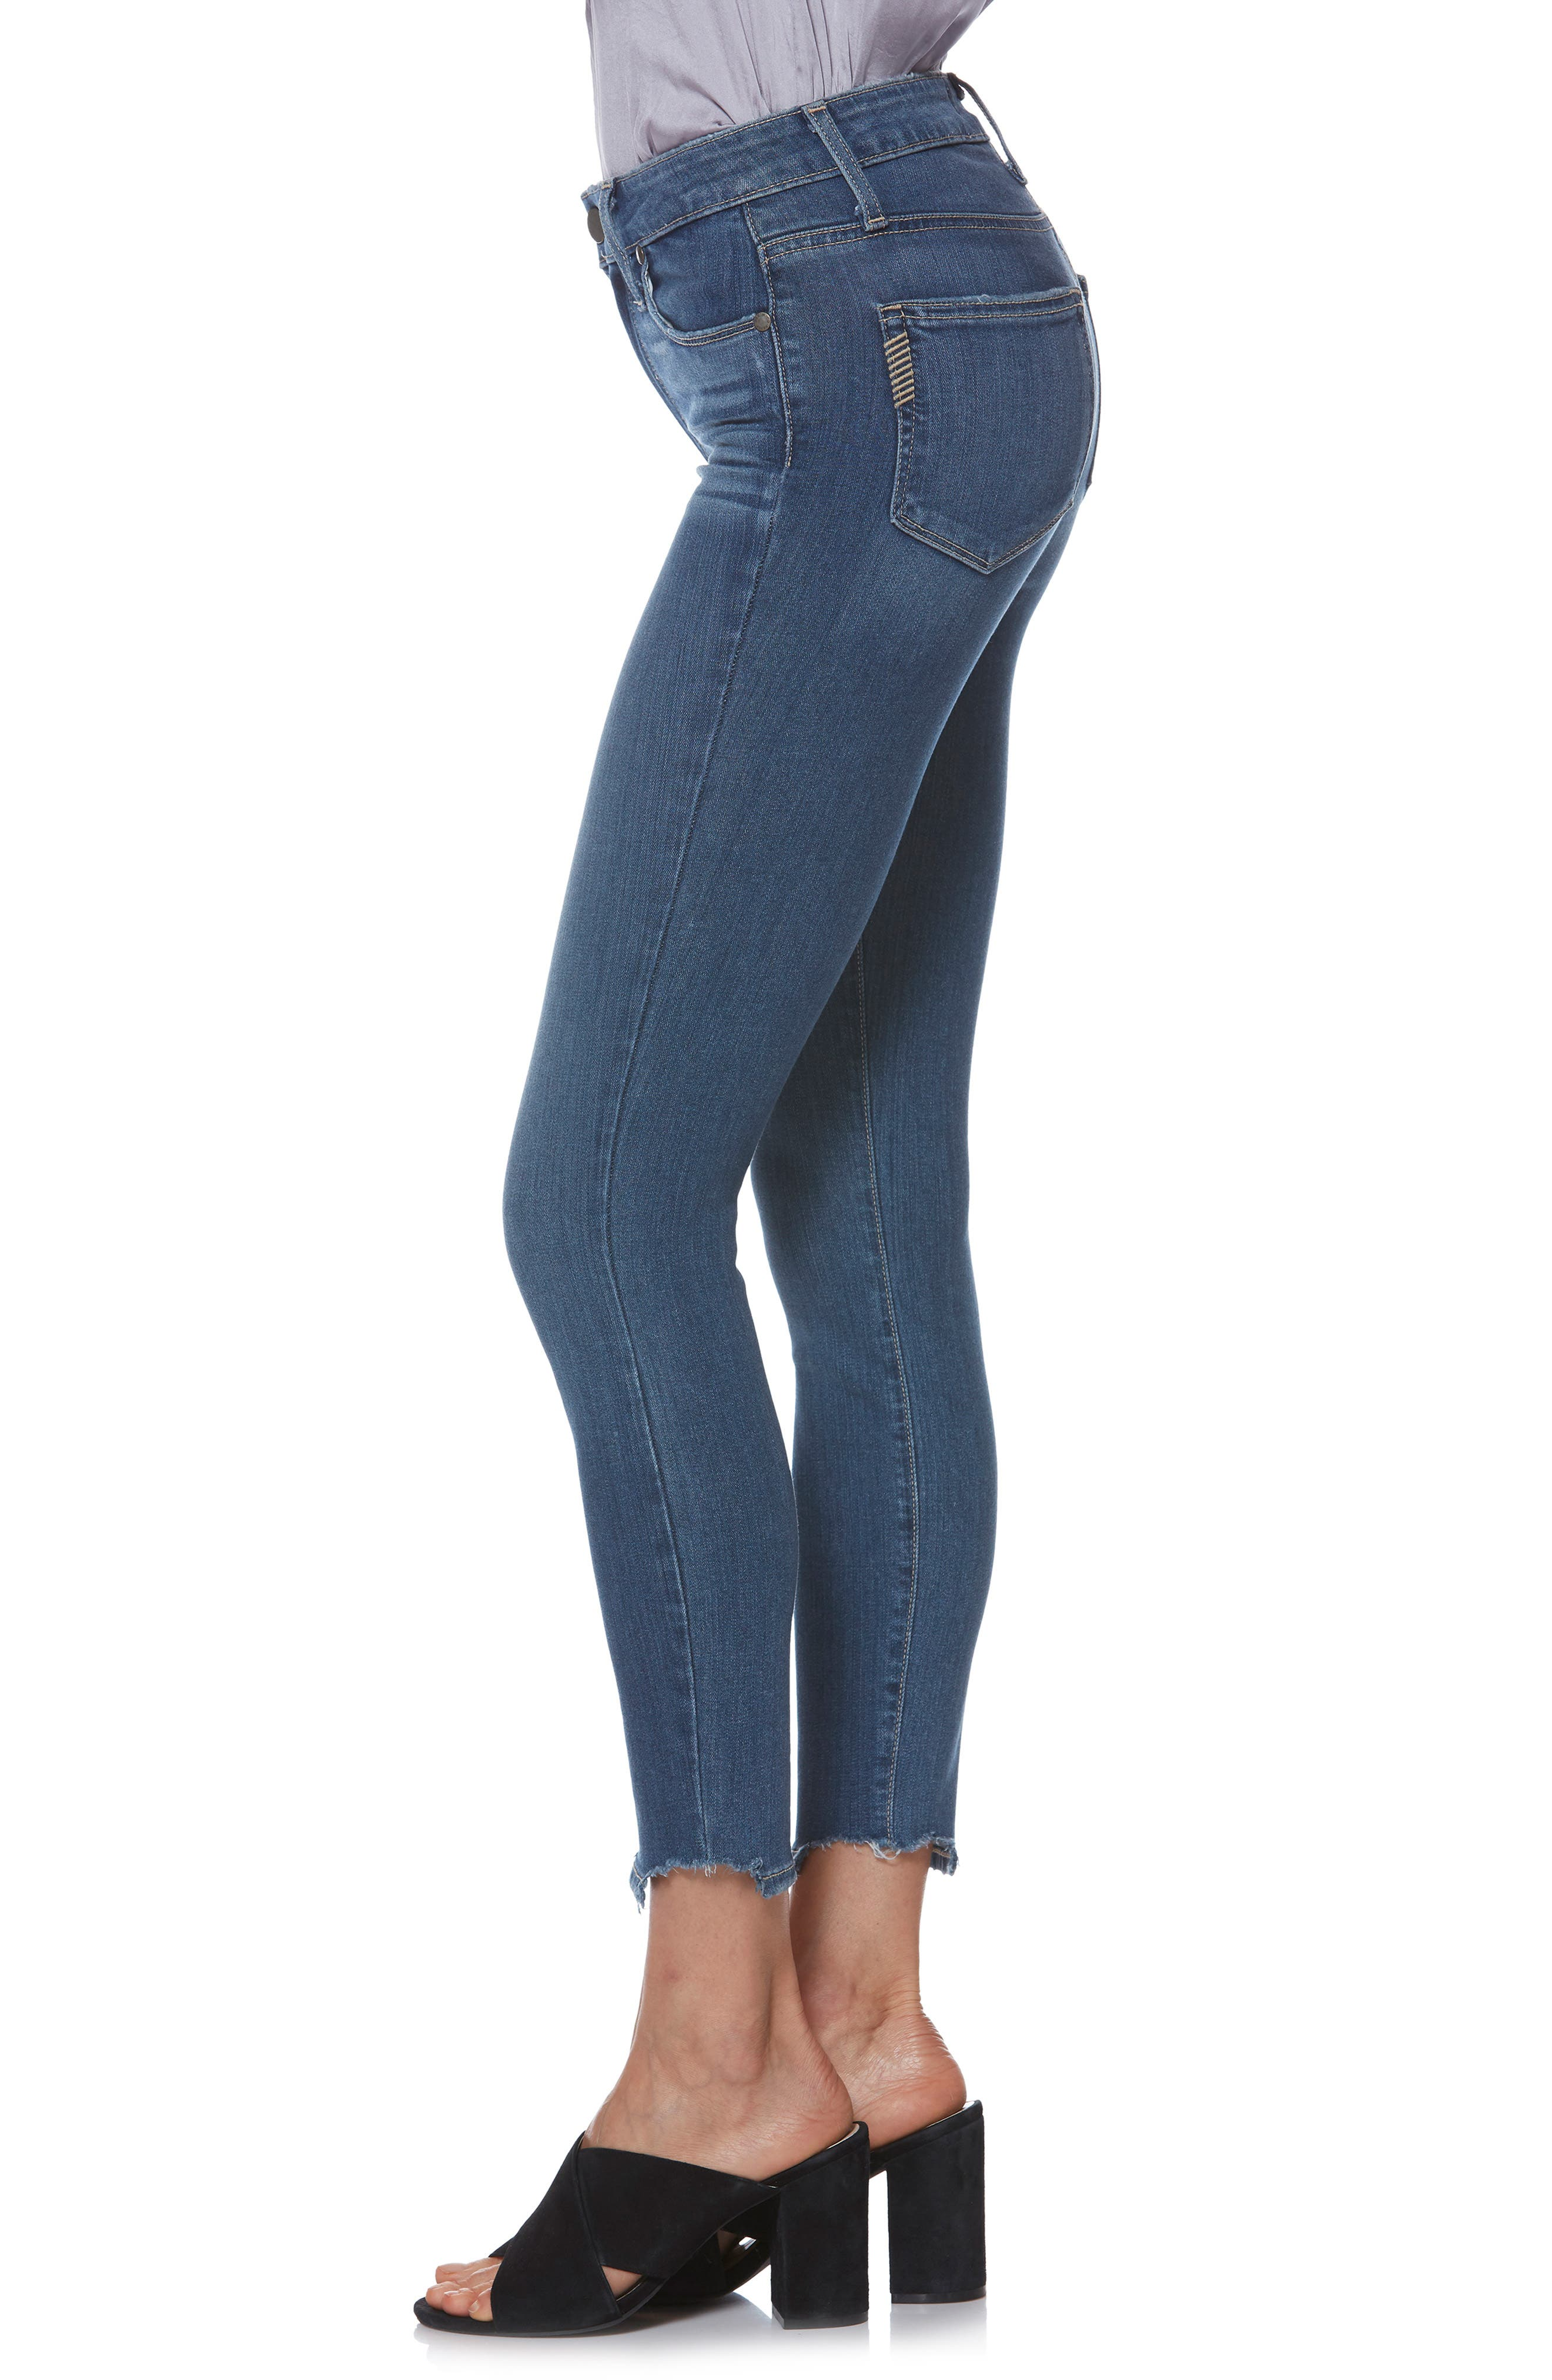 Transcend - Hoxton High Waist Crop Skinny Jeans,                             Alternate thumbnail 3, color,                             400